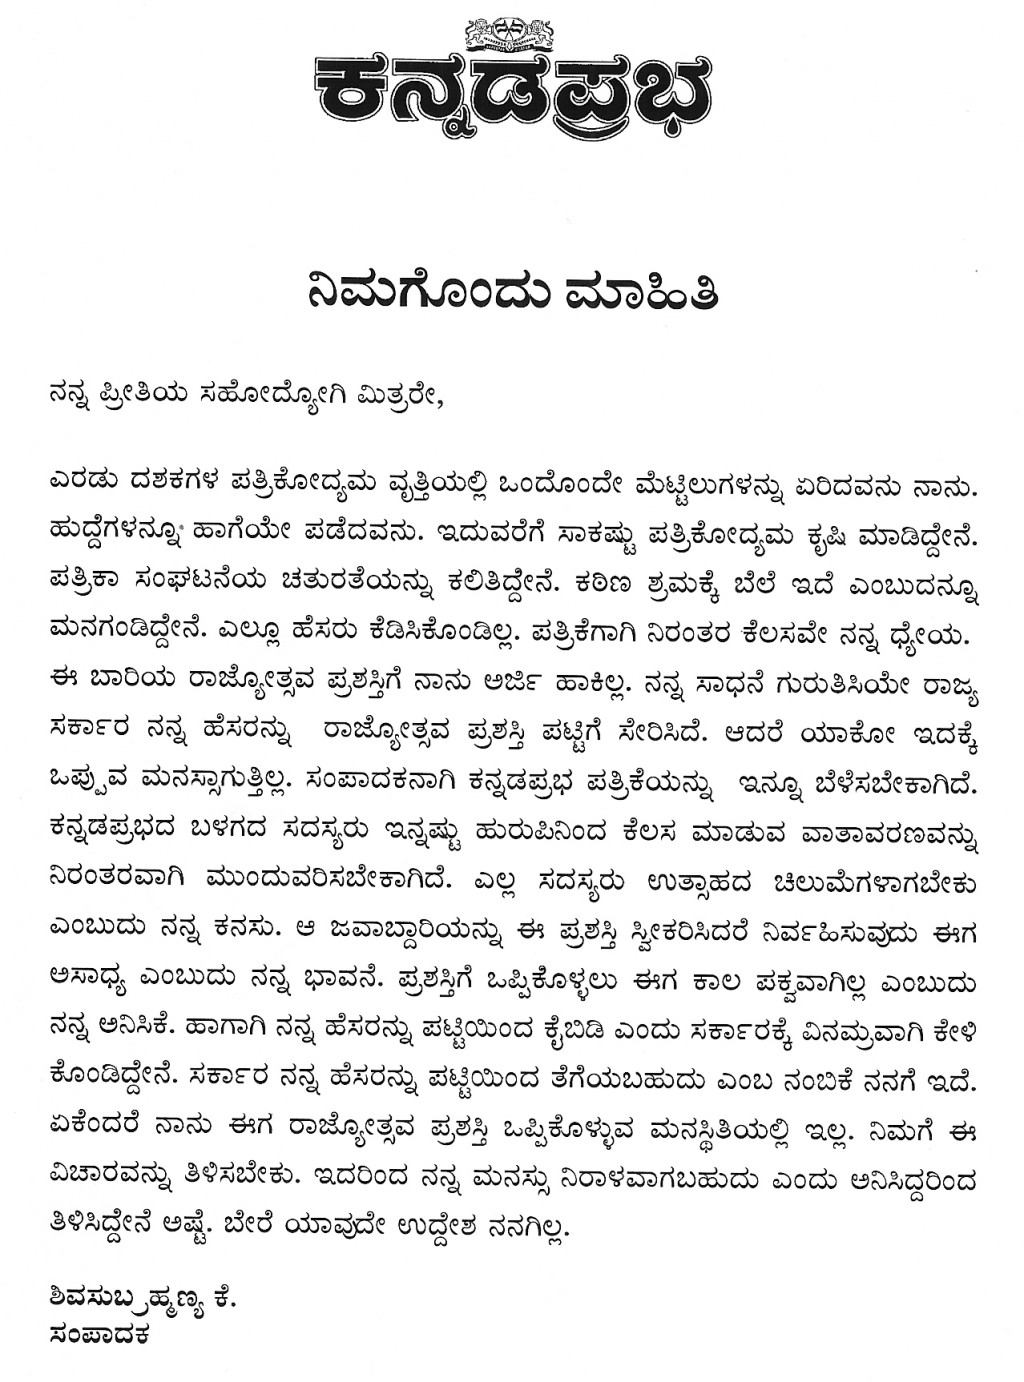 011 Essay Example Water Conservation On How To Write An About Myself Soil And Exampl Phenomenal Rainwater In Hindi Kannada Large